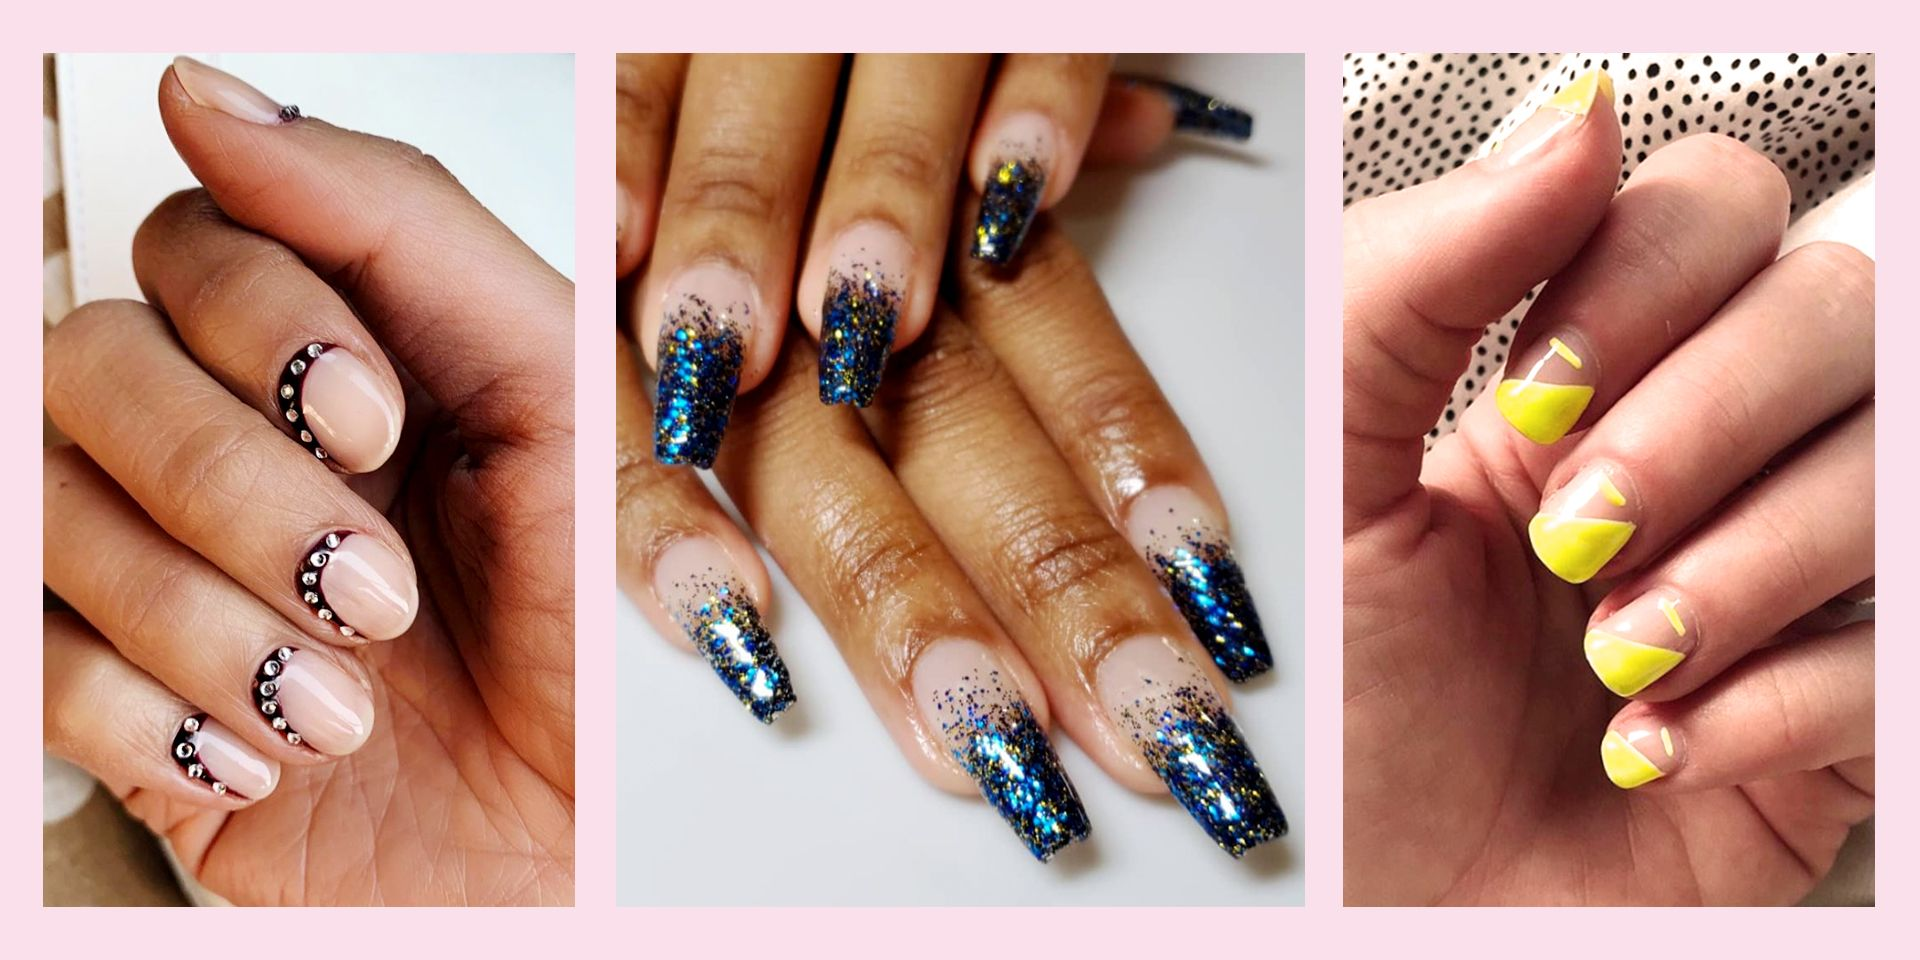 25 Best Homecoming Nail Ideas 2019 , Cute Nail Designs for